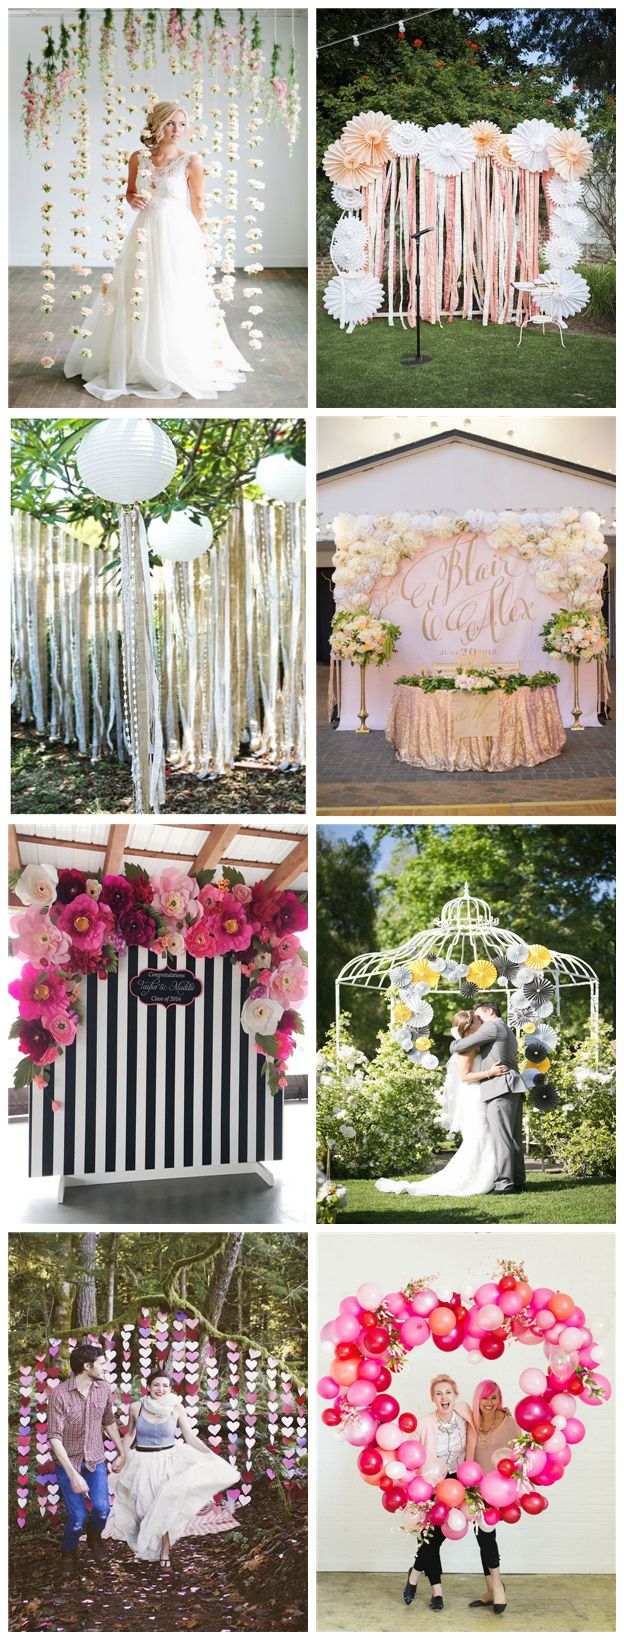 Pretty Photo Booth Backdrop Ideas.